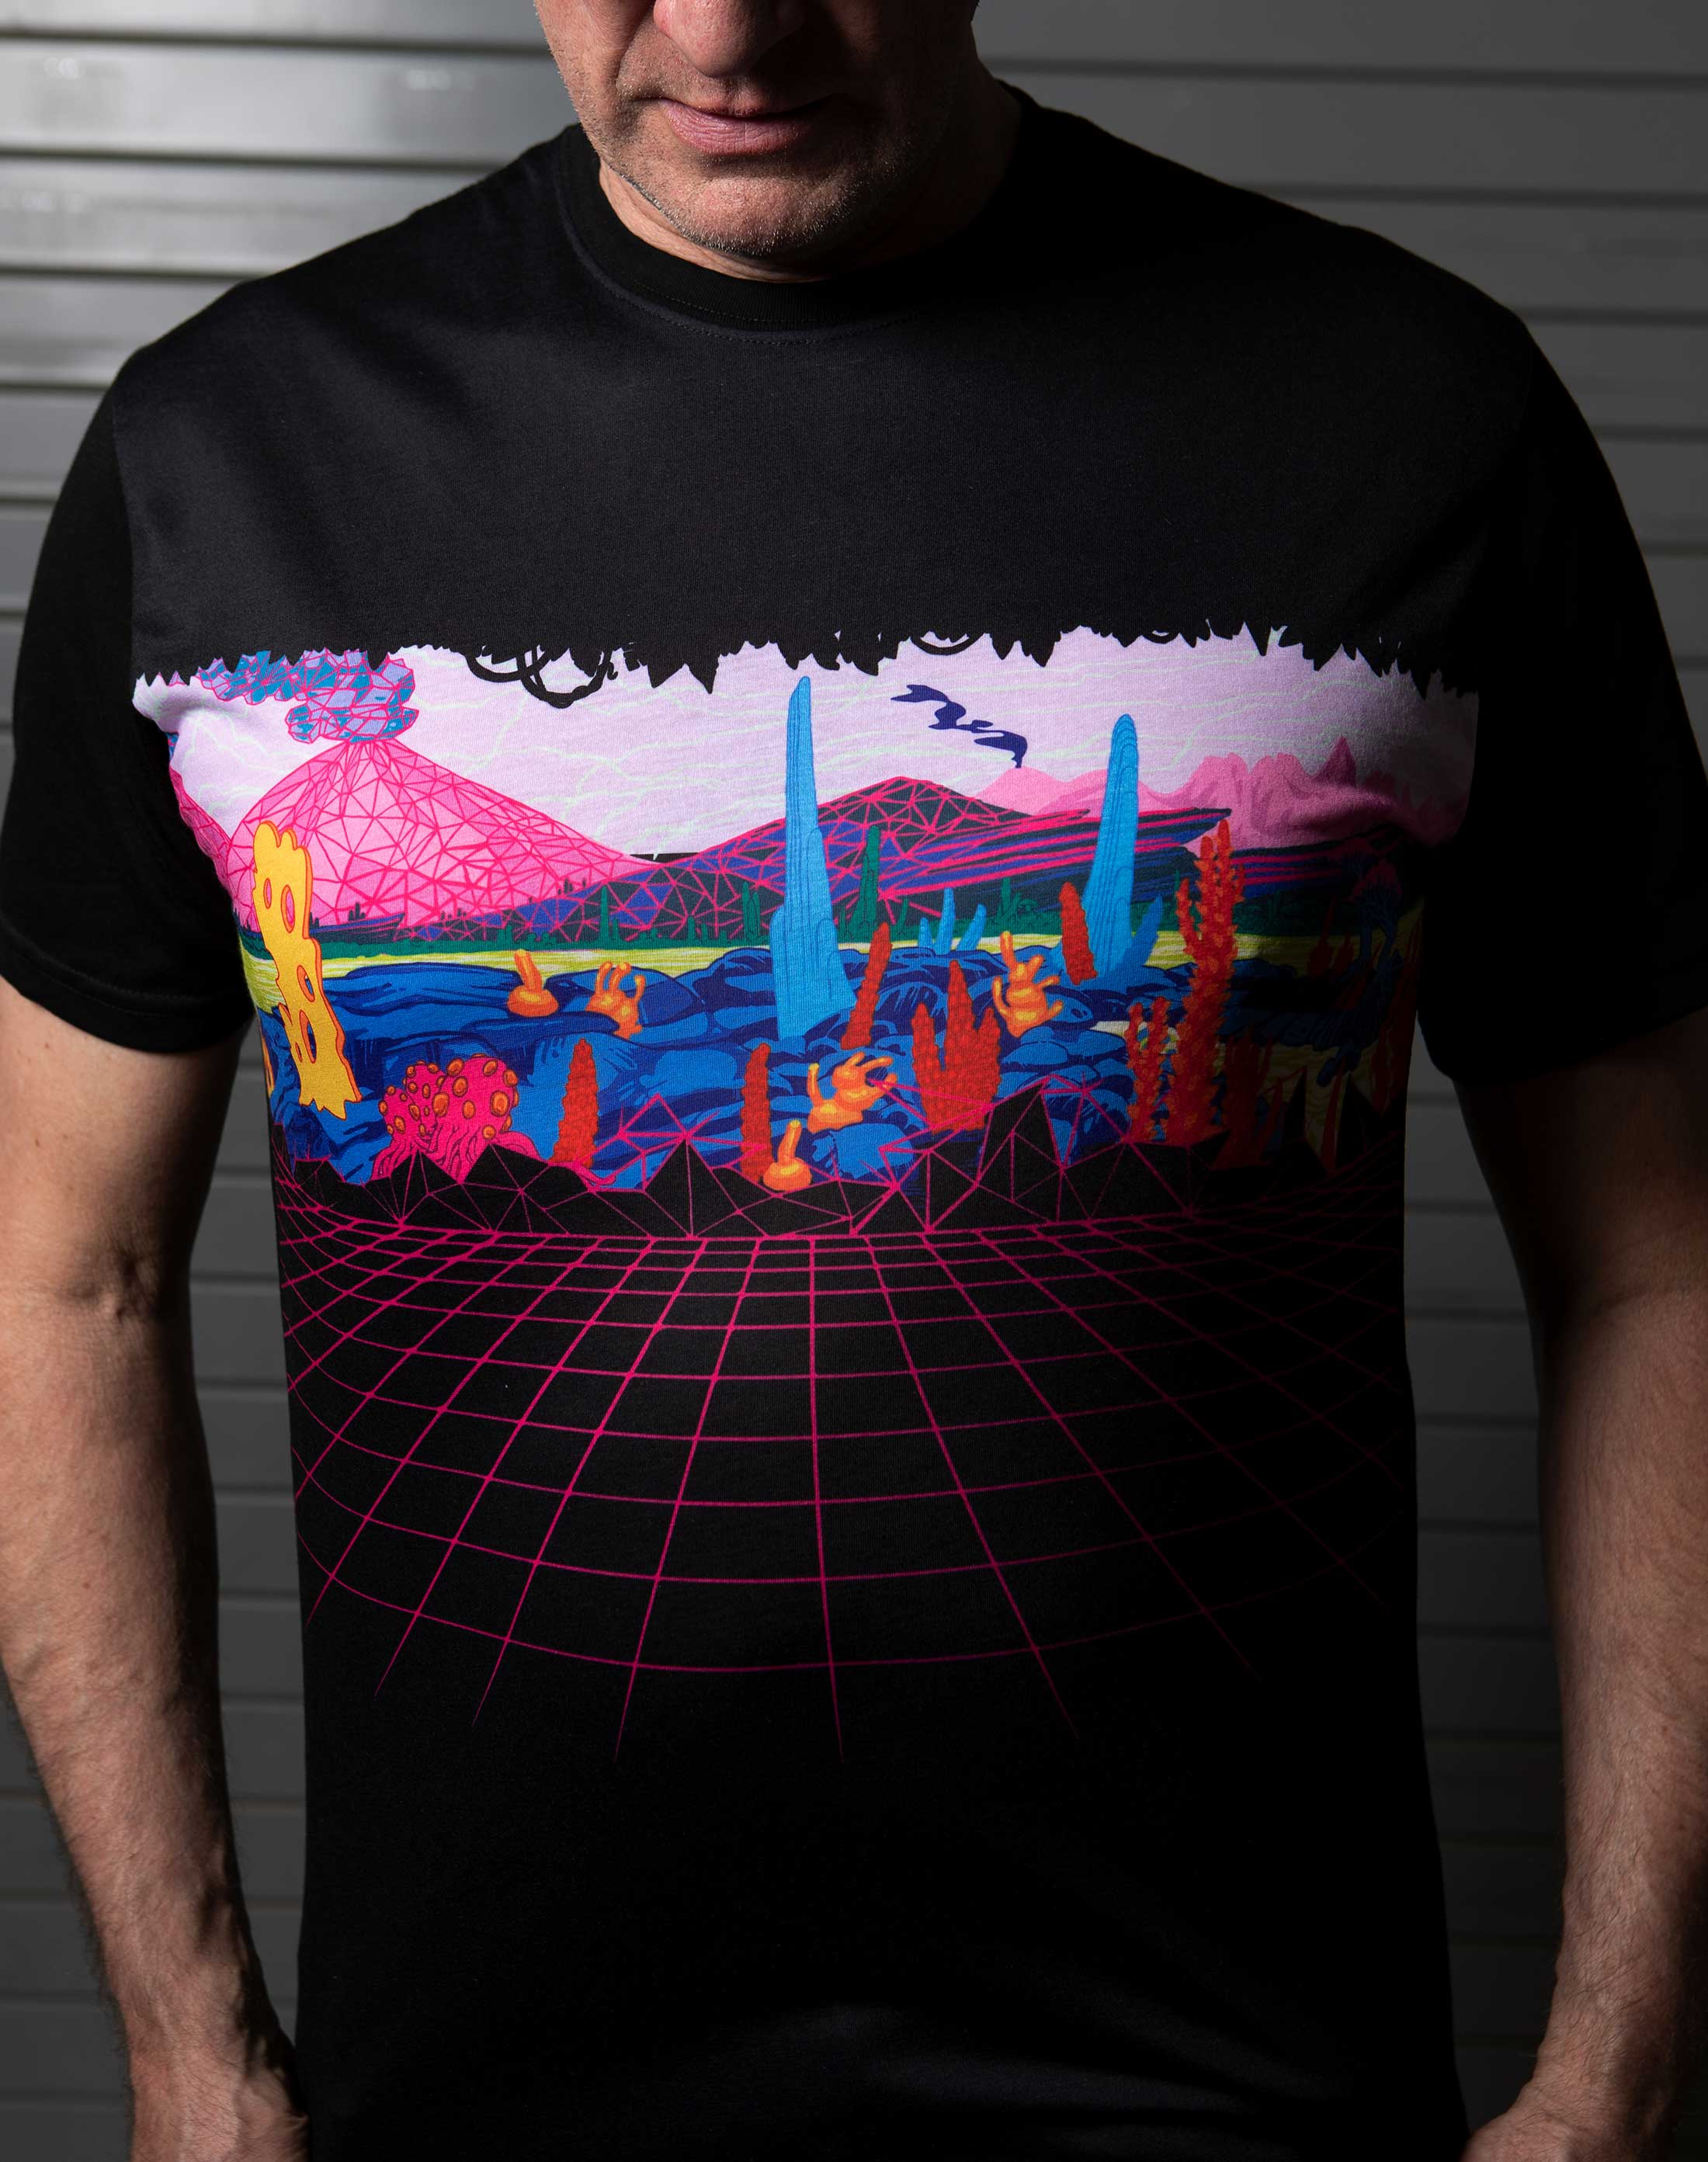 KLS_Gridscape_Tee_Meow_Wolf